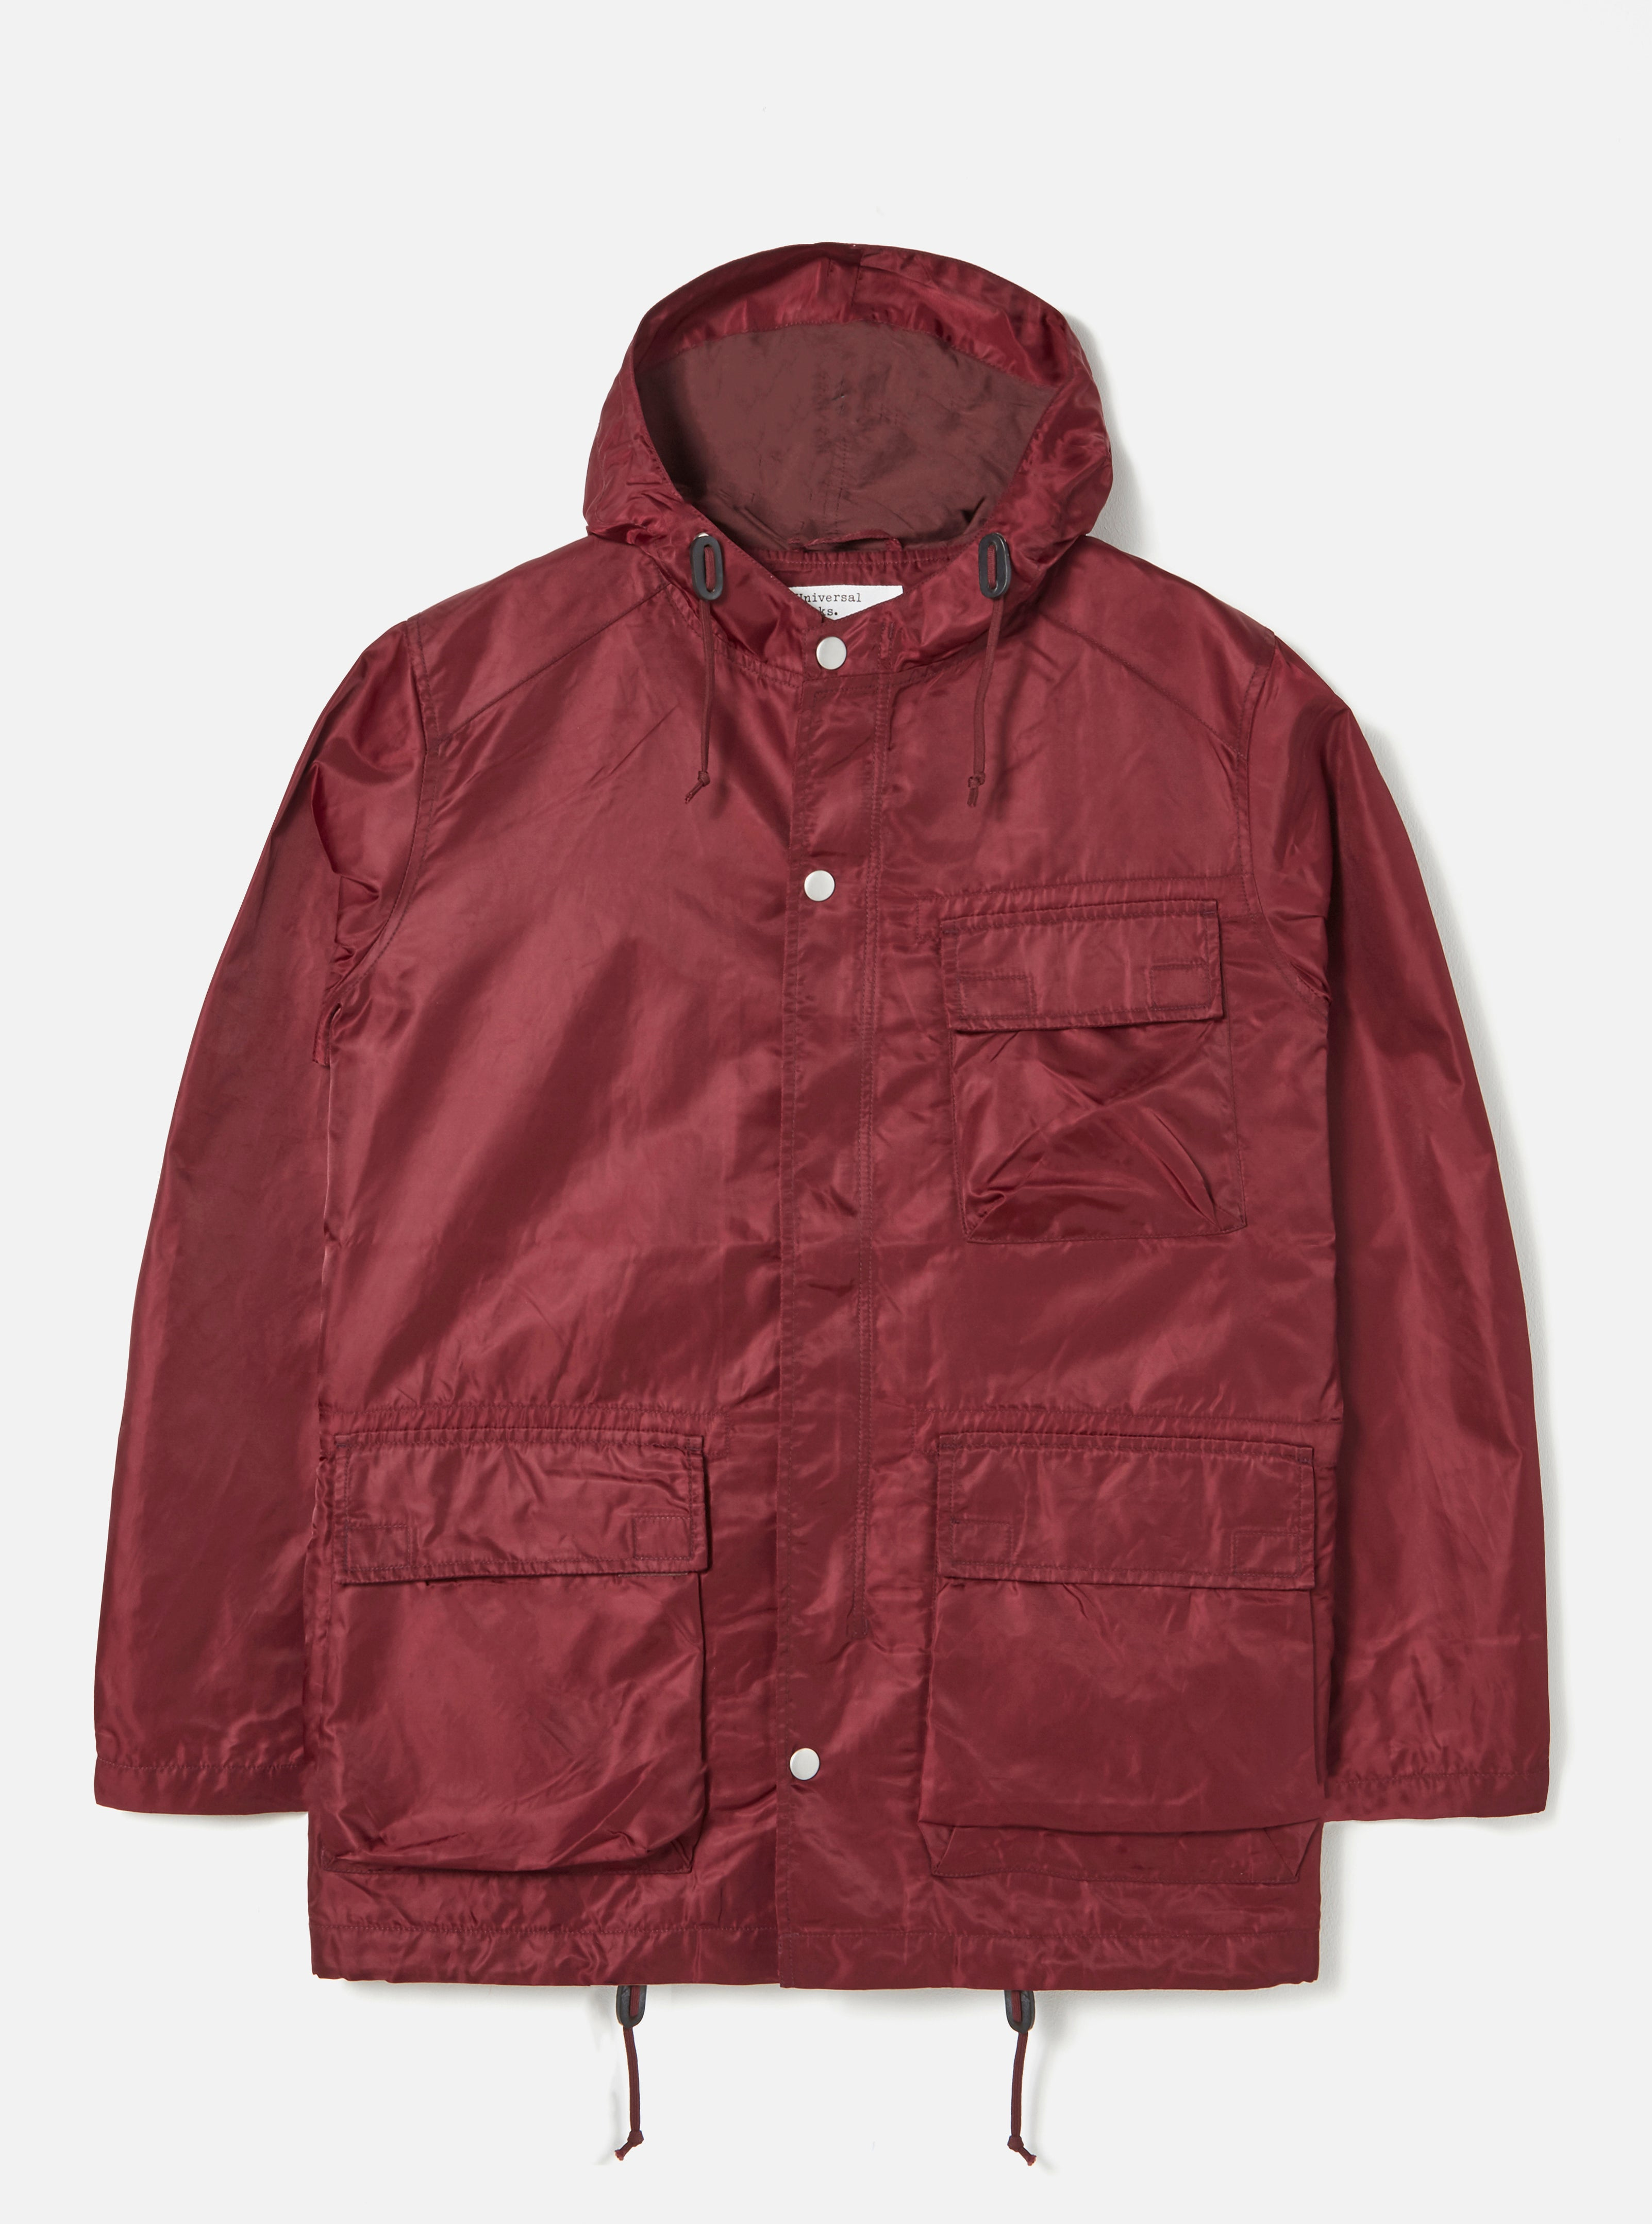 Universal Works NS Short Parka in Raisin Flight Nylon